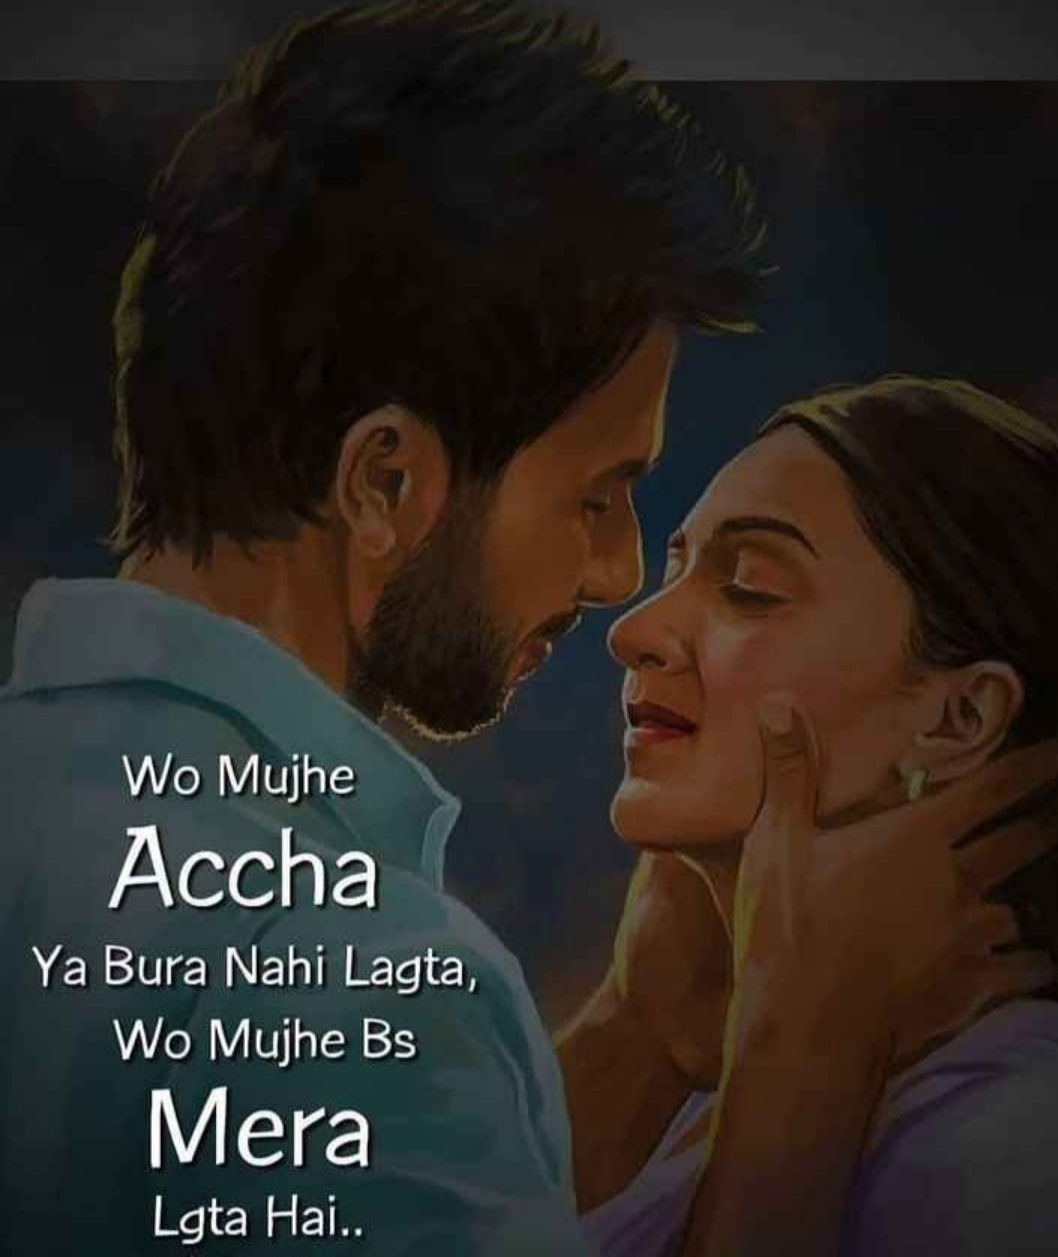 boy hold girl face in his hands. both are try to kiss each other. boy wear sky blue shirt and girl wear pink punjabi suit. both close their eyes. romatic lines wirrten on boy's back. background is dark.